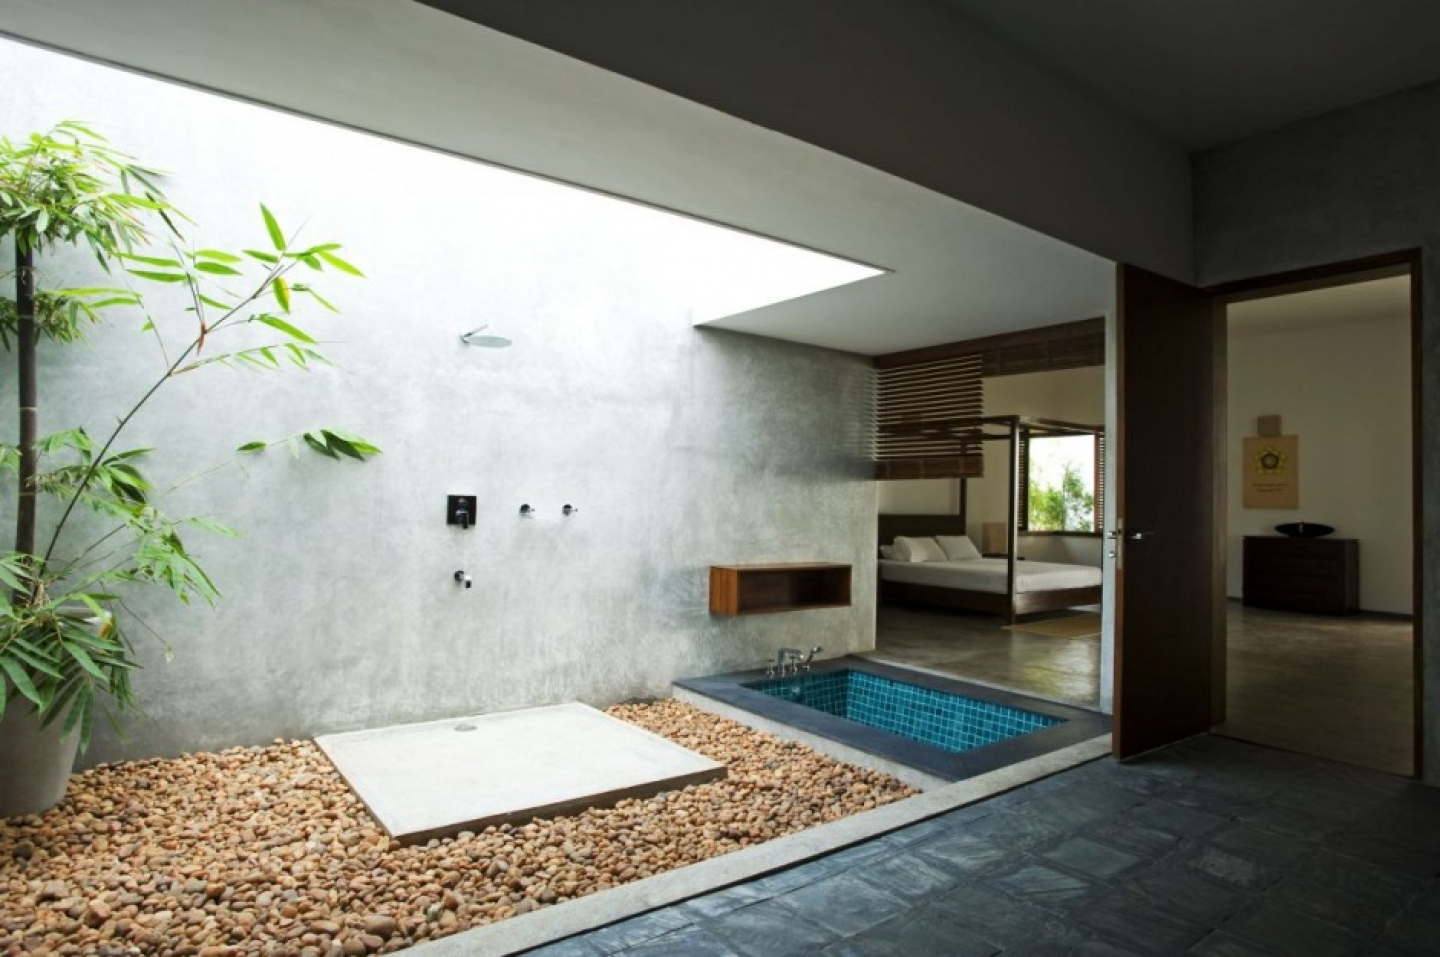 Spa Bathroom Design Ideas Outdoor